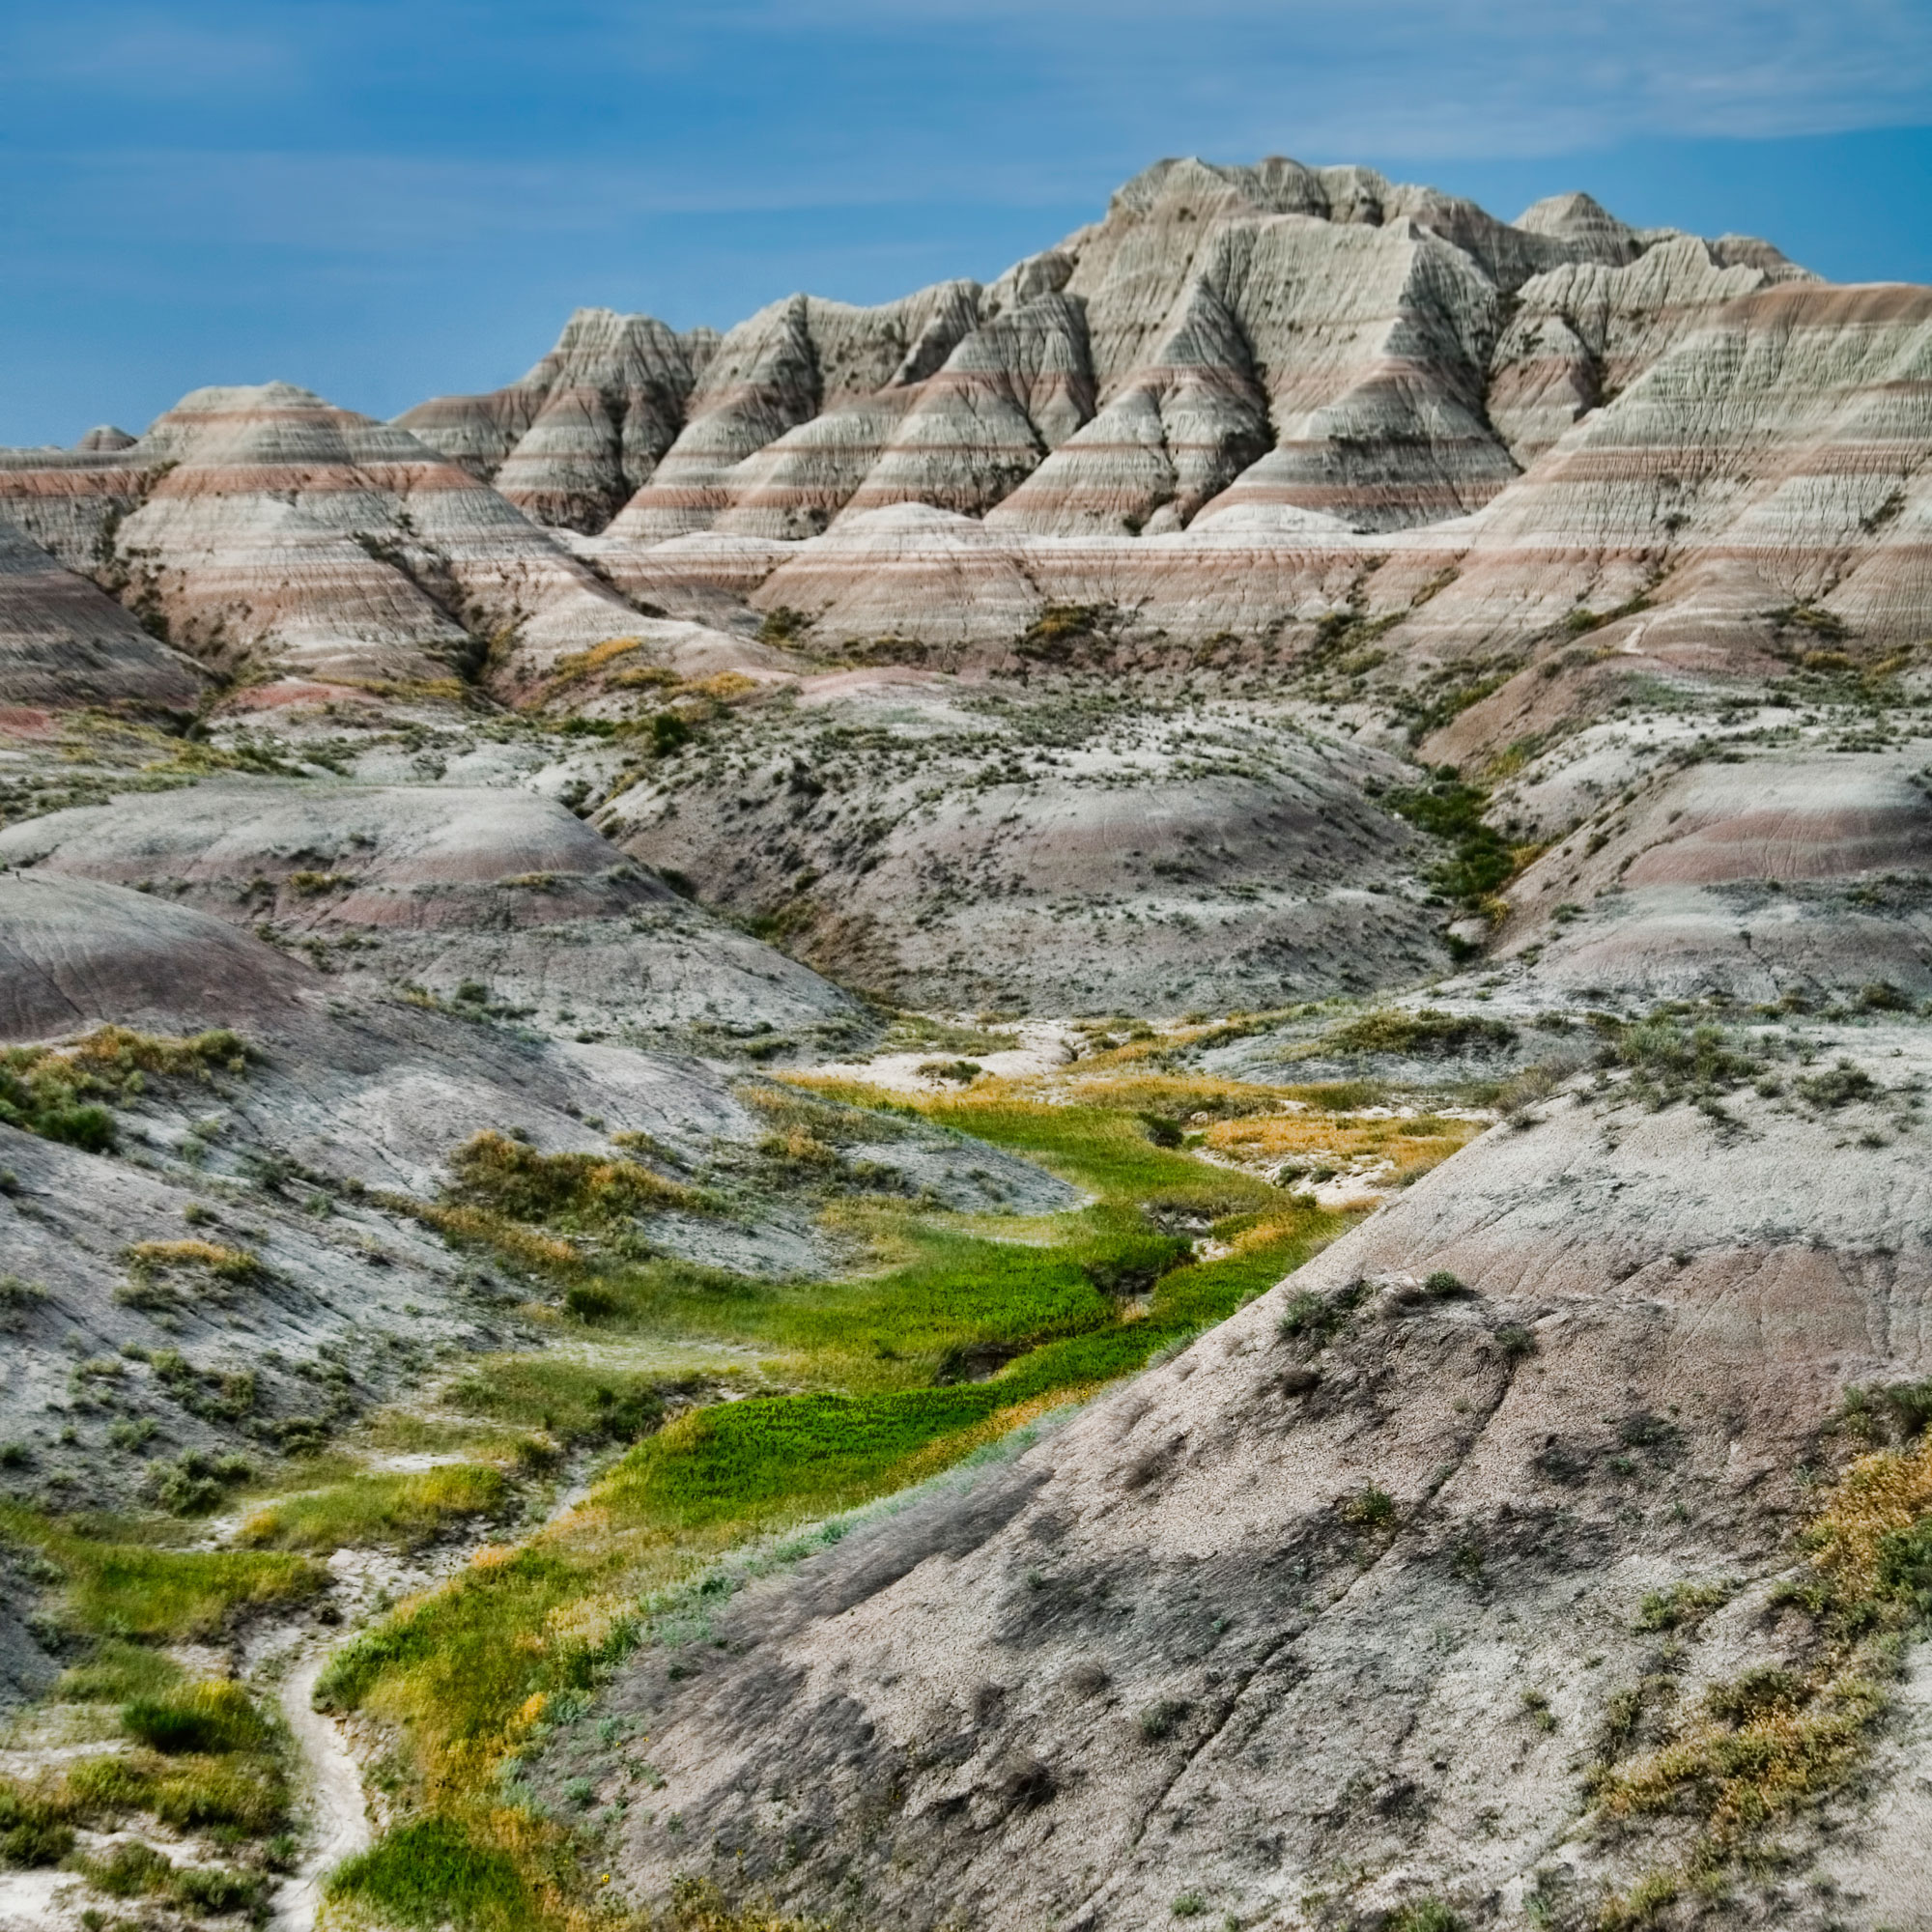 How to Enjoy Badlands National Park With the Kids